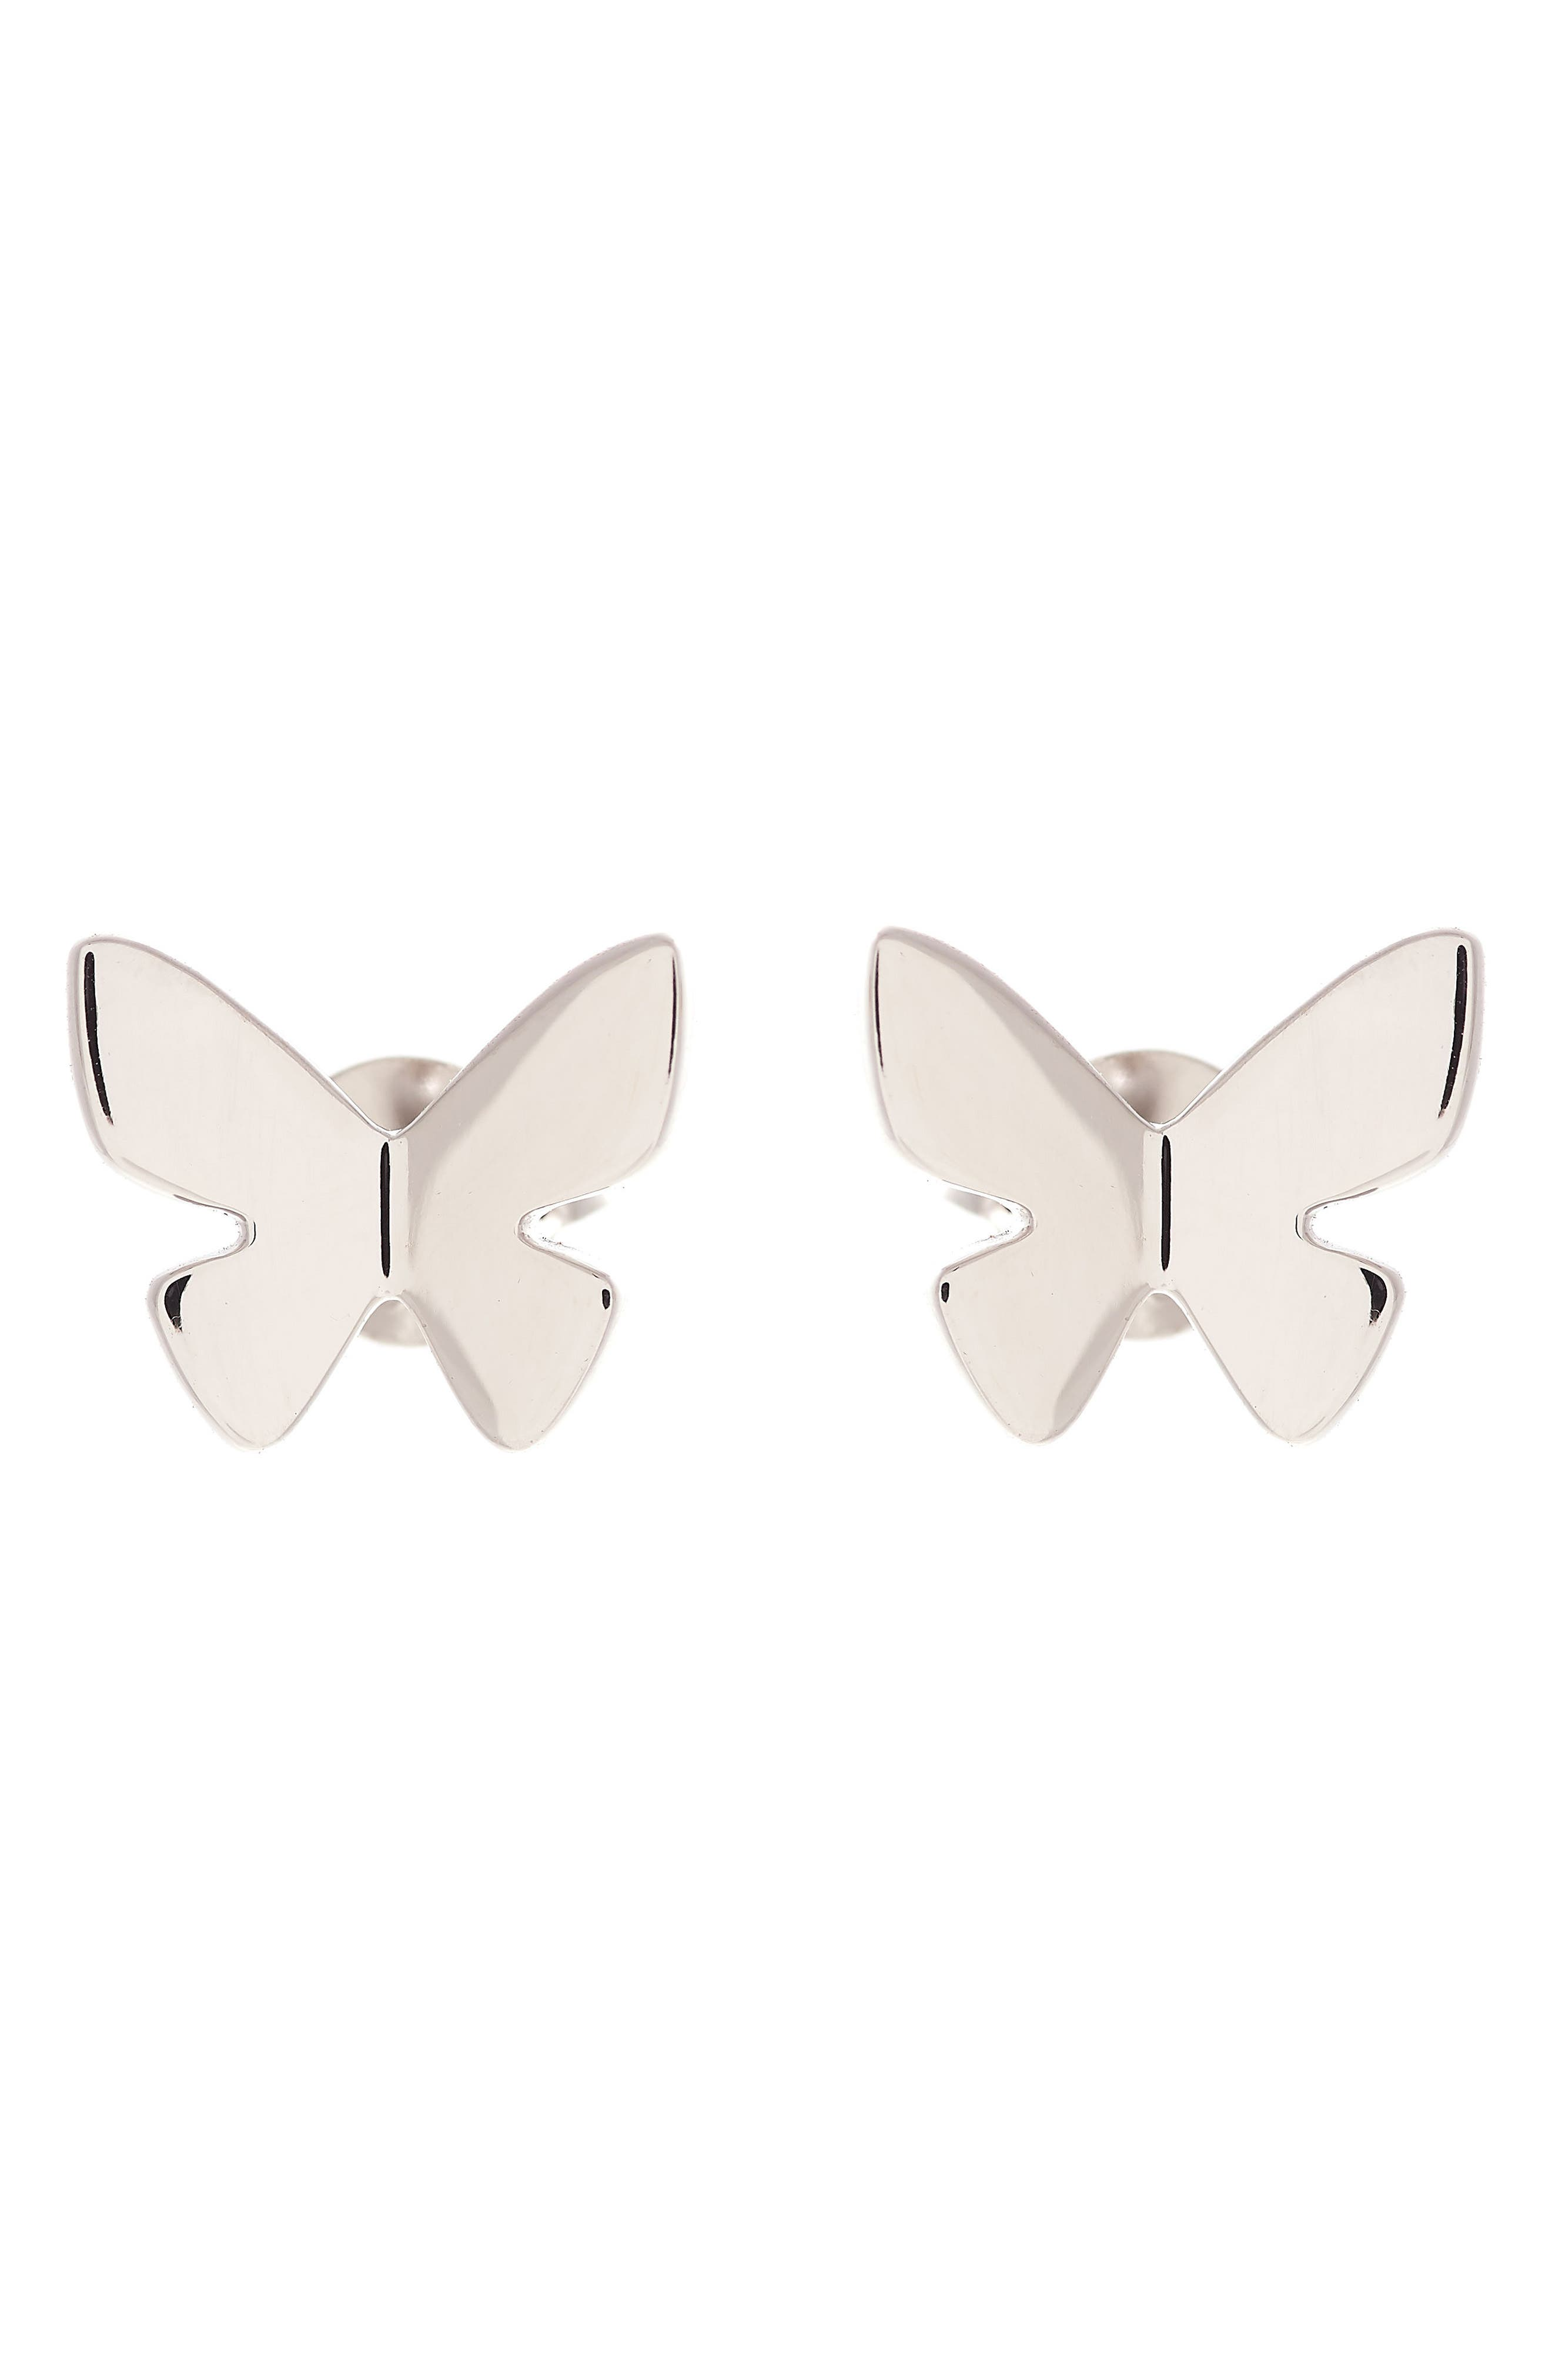 Social Butterfly Stud Earrings,                             Main thumbnail 1, color,                             SILVER